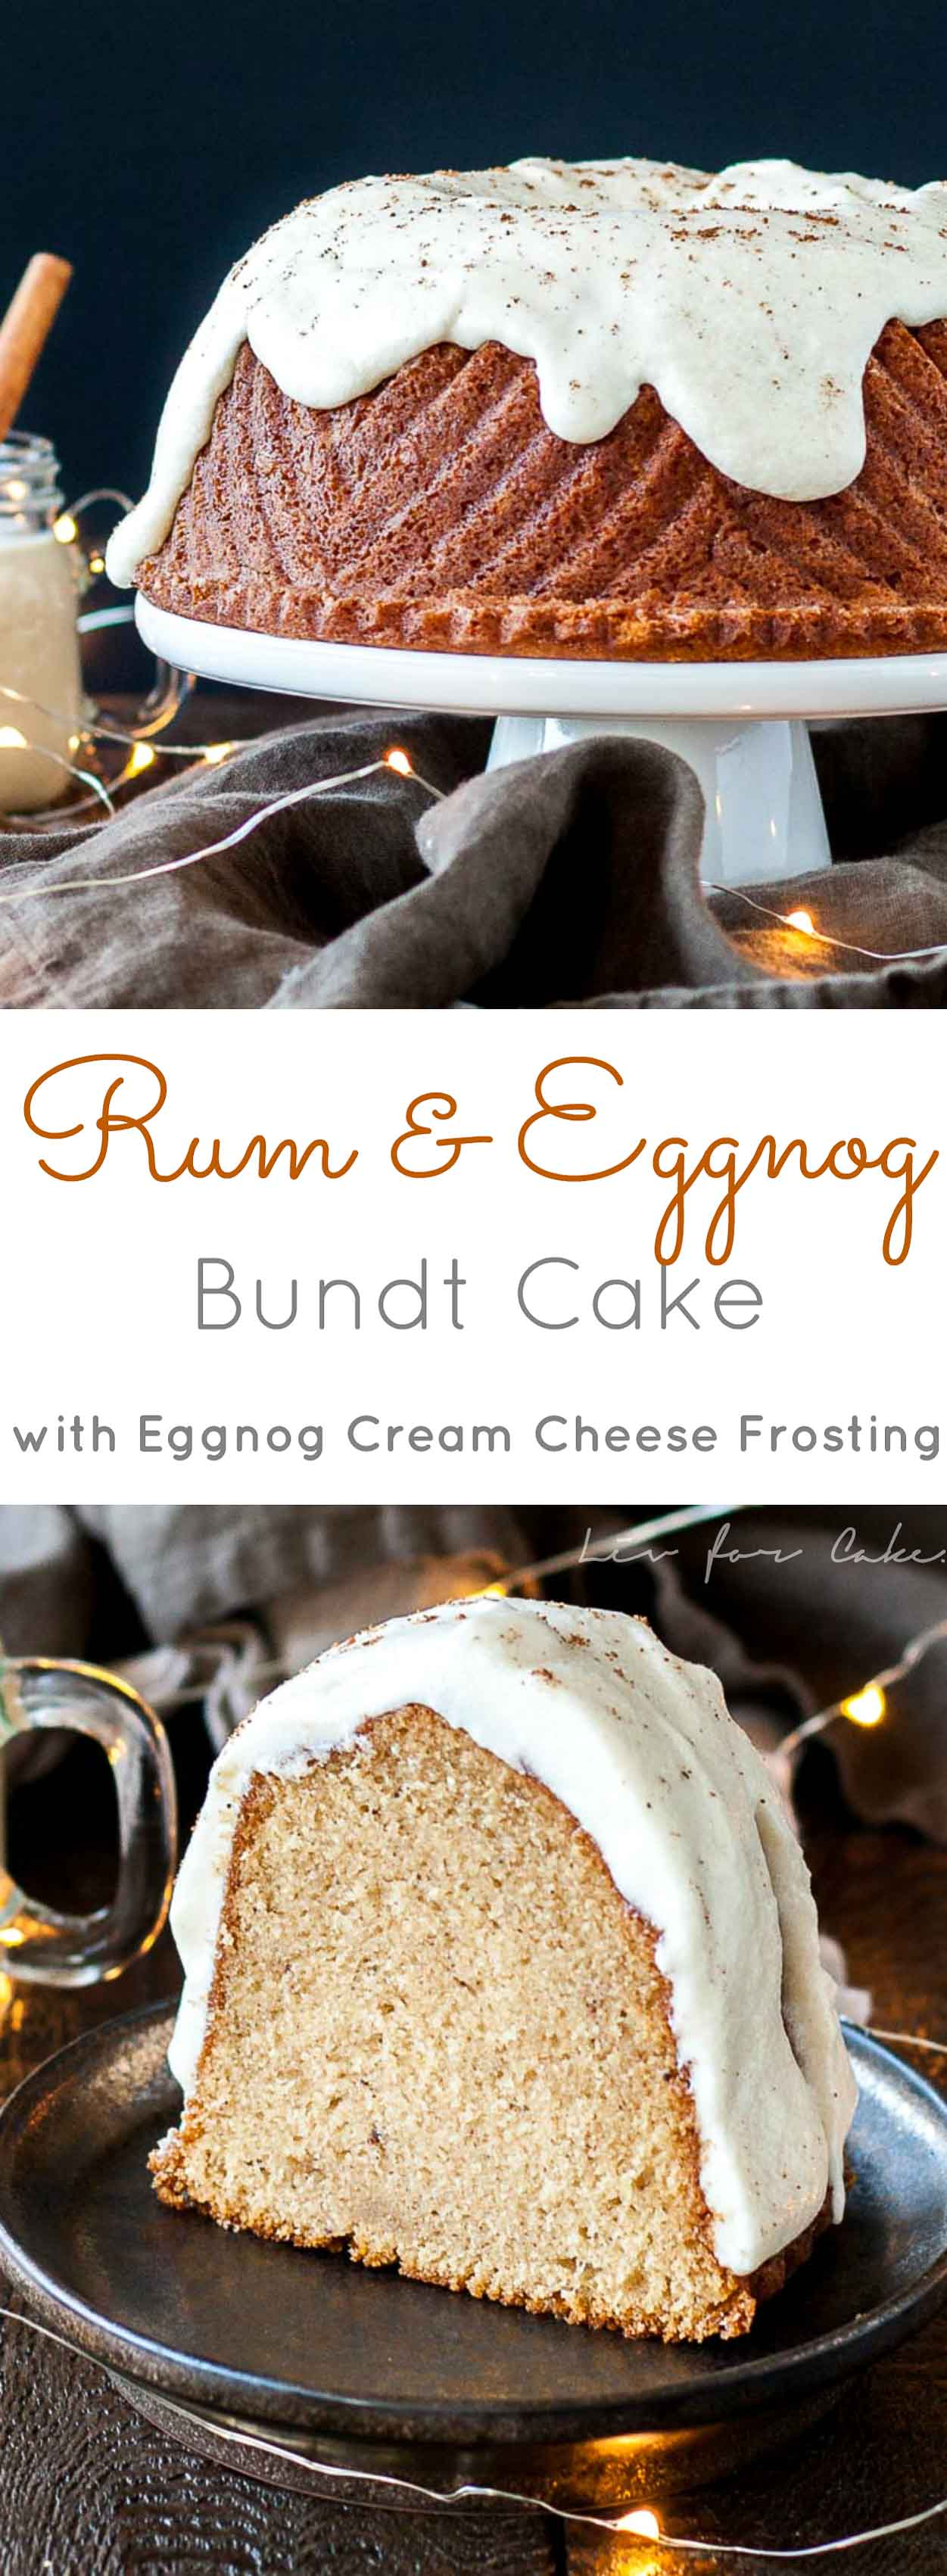 Your favourite holiday beverages in one delicious cake! The perfect mix of nice and naughty in this festive Rum & Eggnog Bundt. | livforcake.com